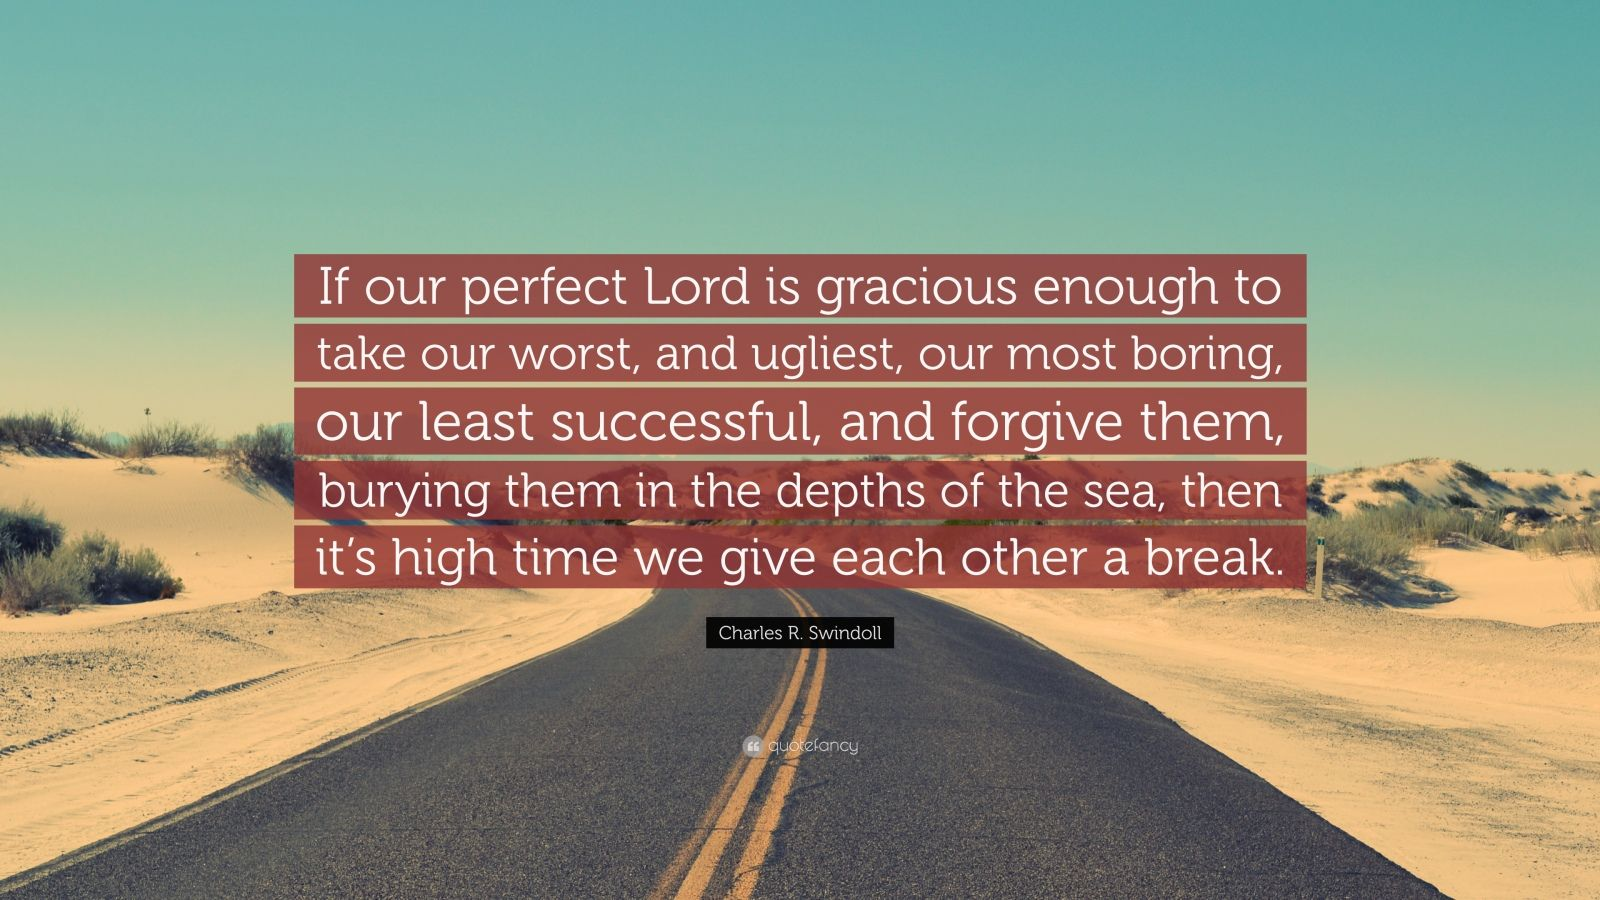 "Charles R. Swindoll Quote: ""If our perfect Lord is gracious enough to take our worst, and ugliest, our most boring, our least successful, and forgive them, burying them in the depths of the sea, then it's high time we give each other a break."""